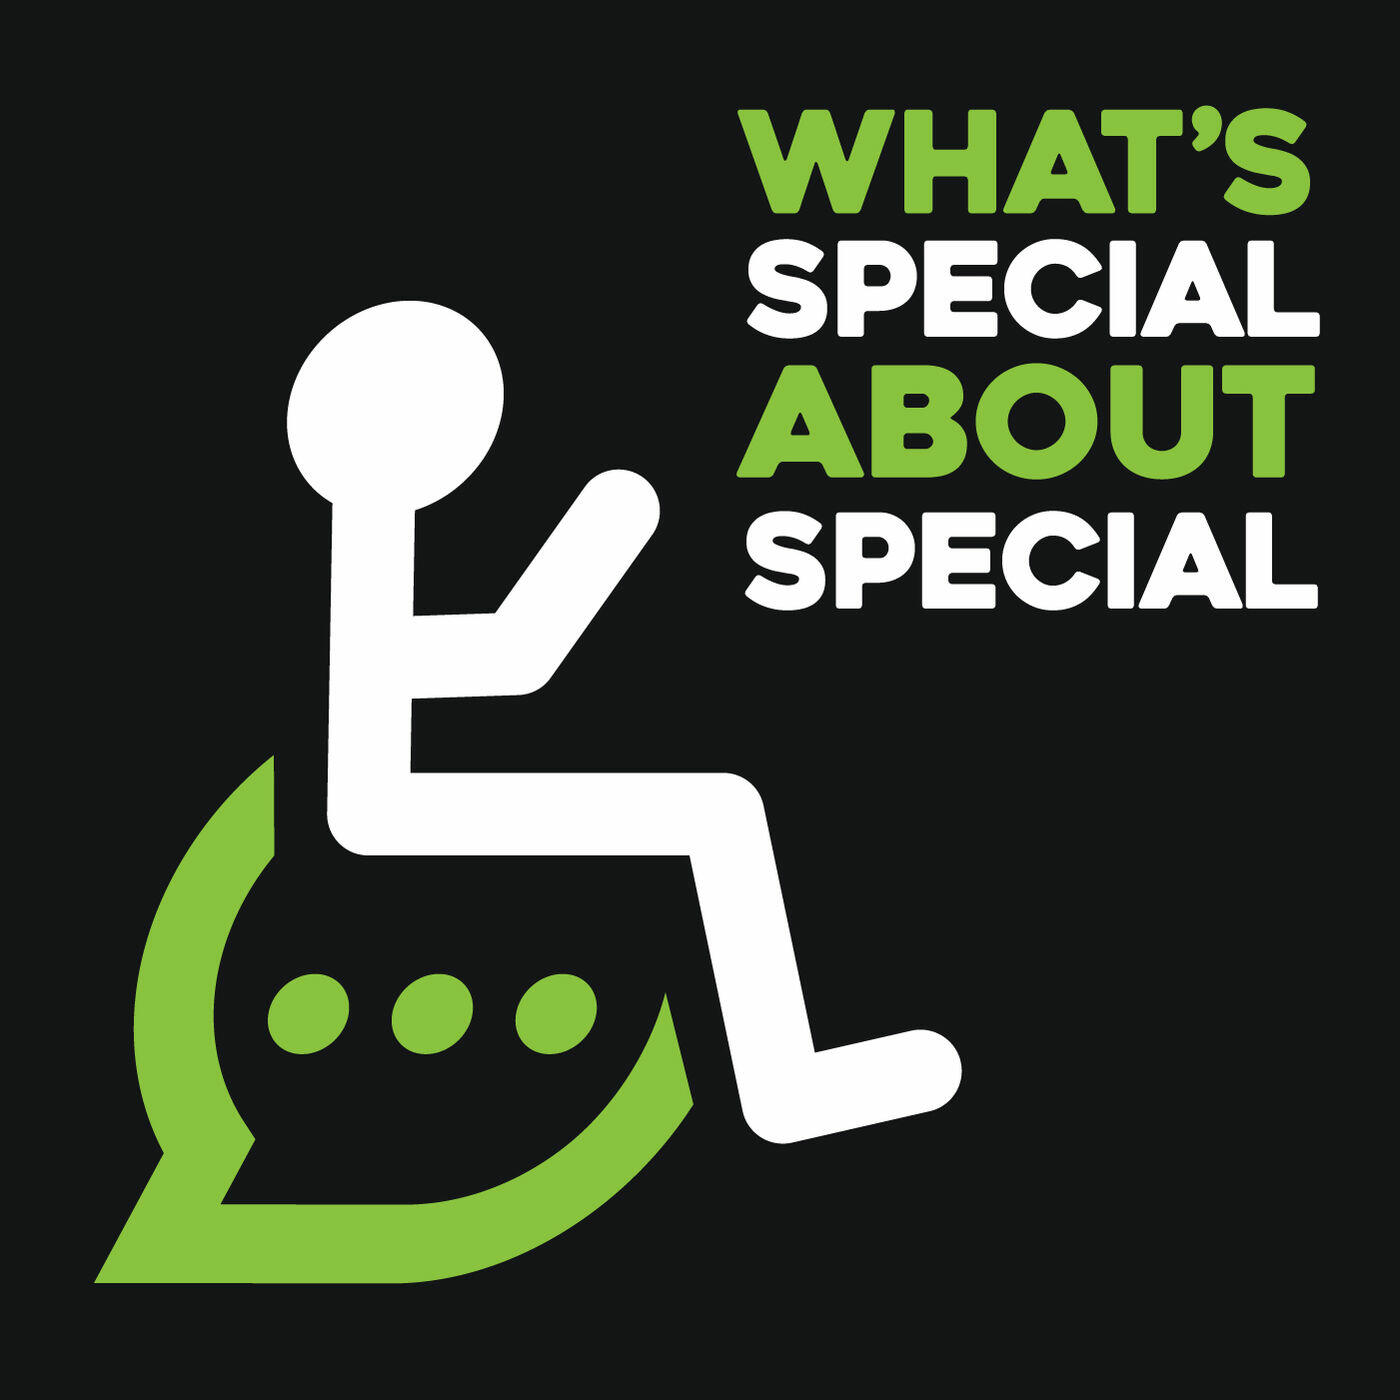 What's Special About Special Podcast